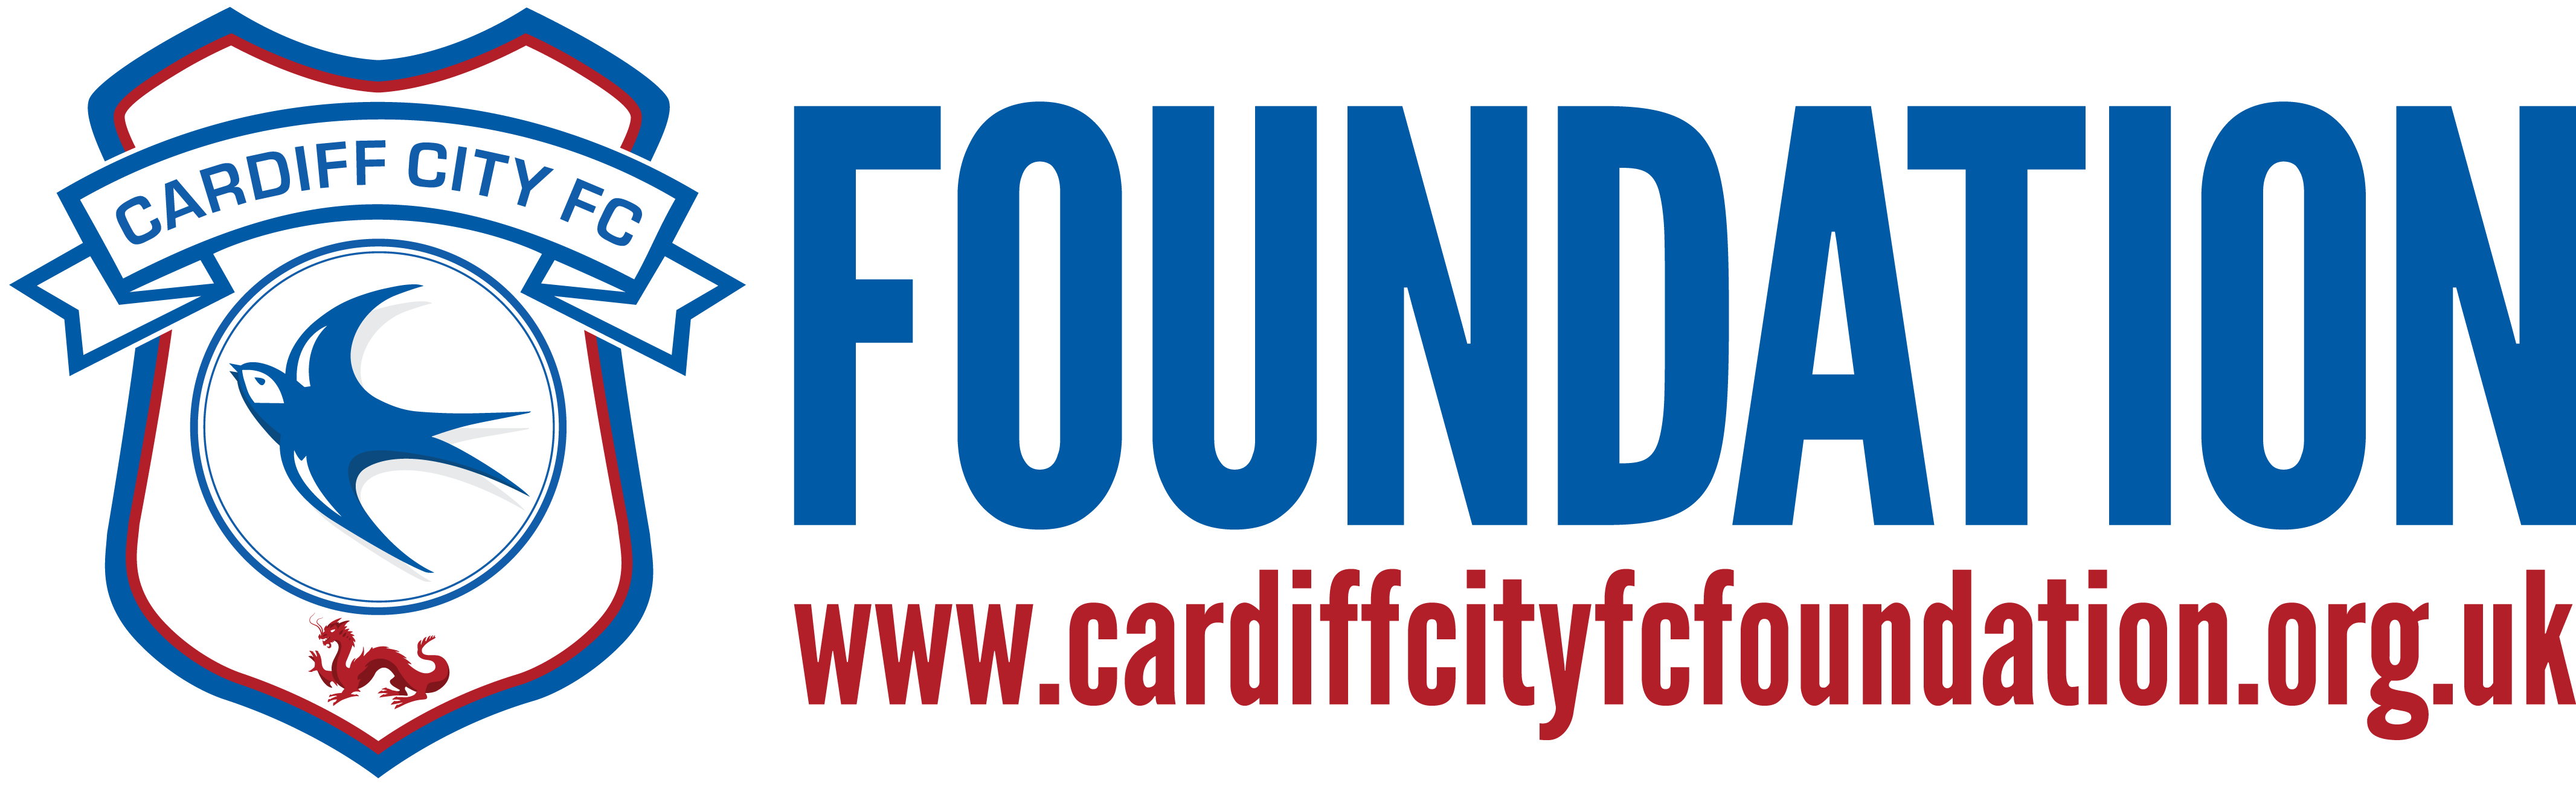 Cardiff City FC Foundation